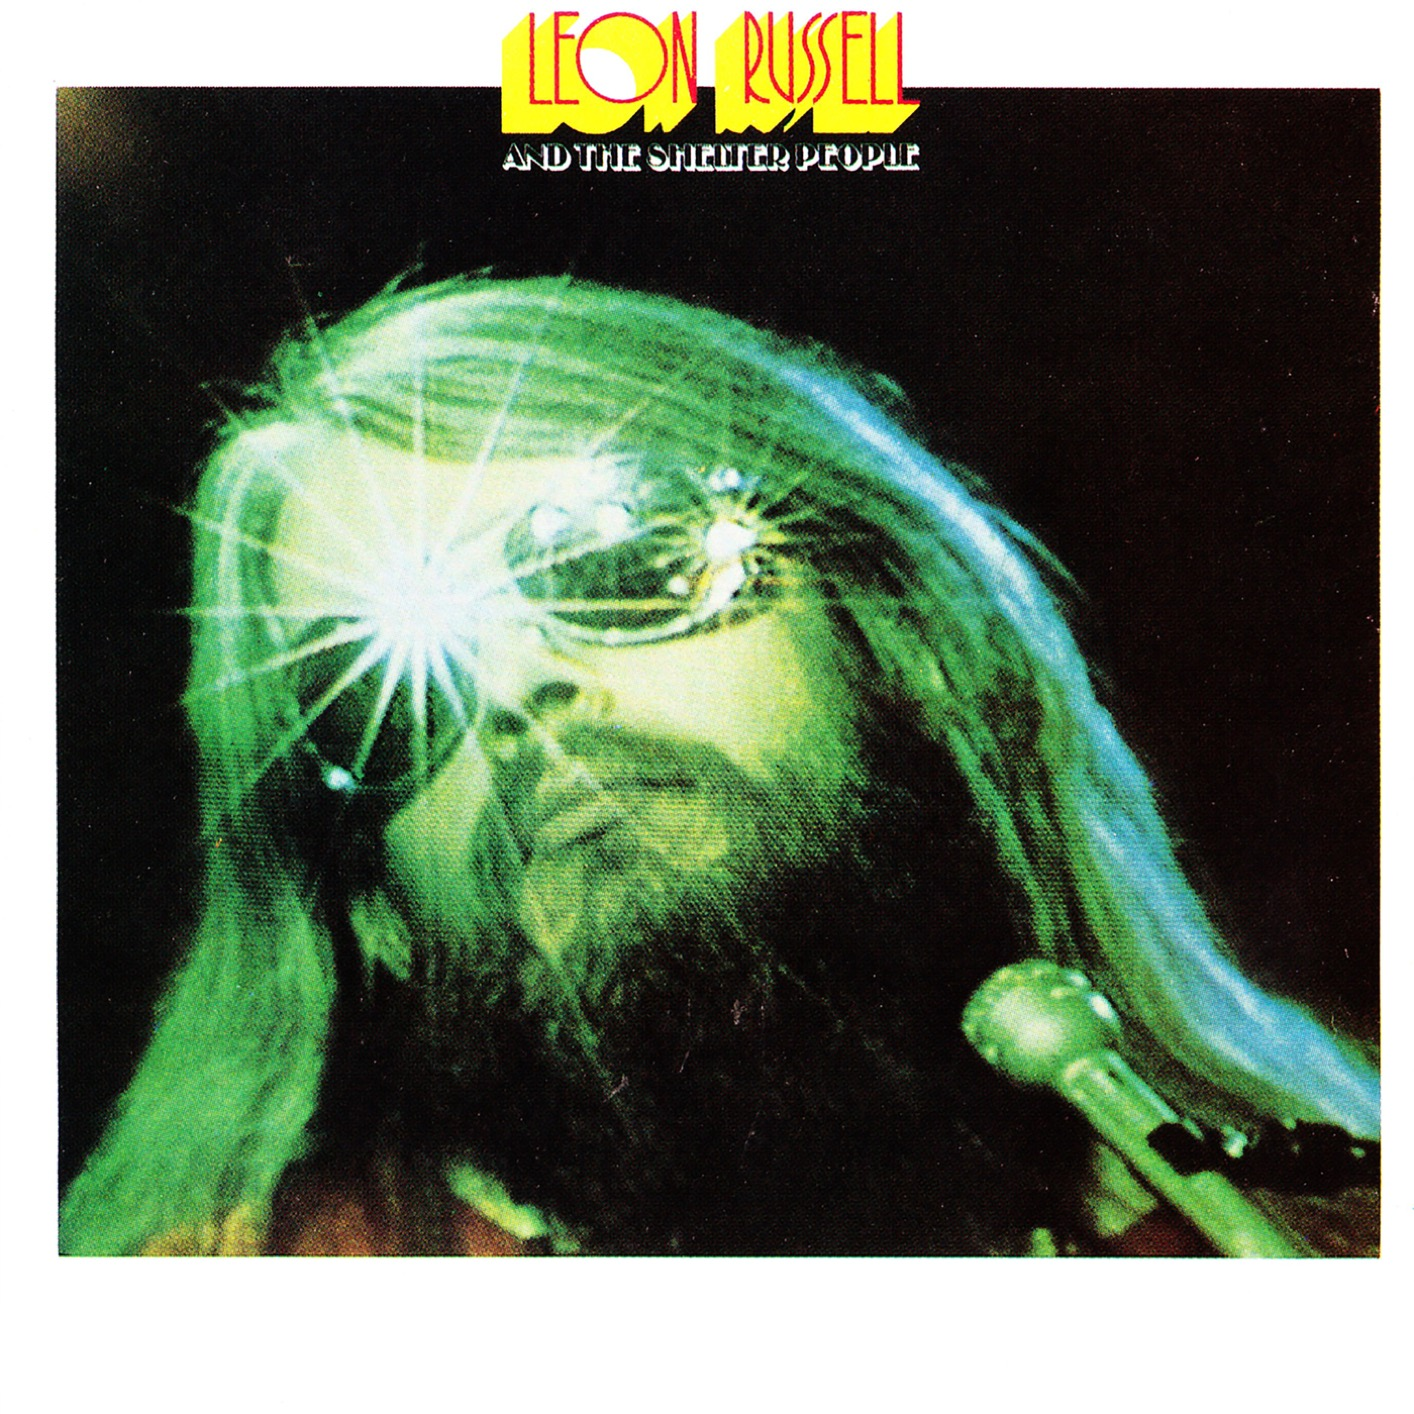 Leon Russell - Leon Russell And The Shelter People (1971/2013/2019) [Official Digital Download 24/96]